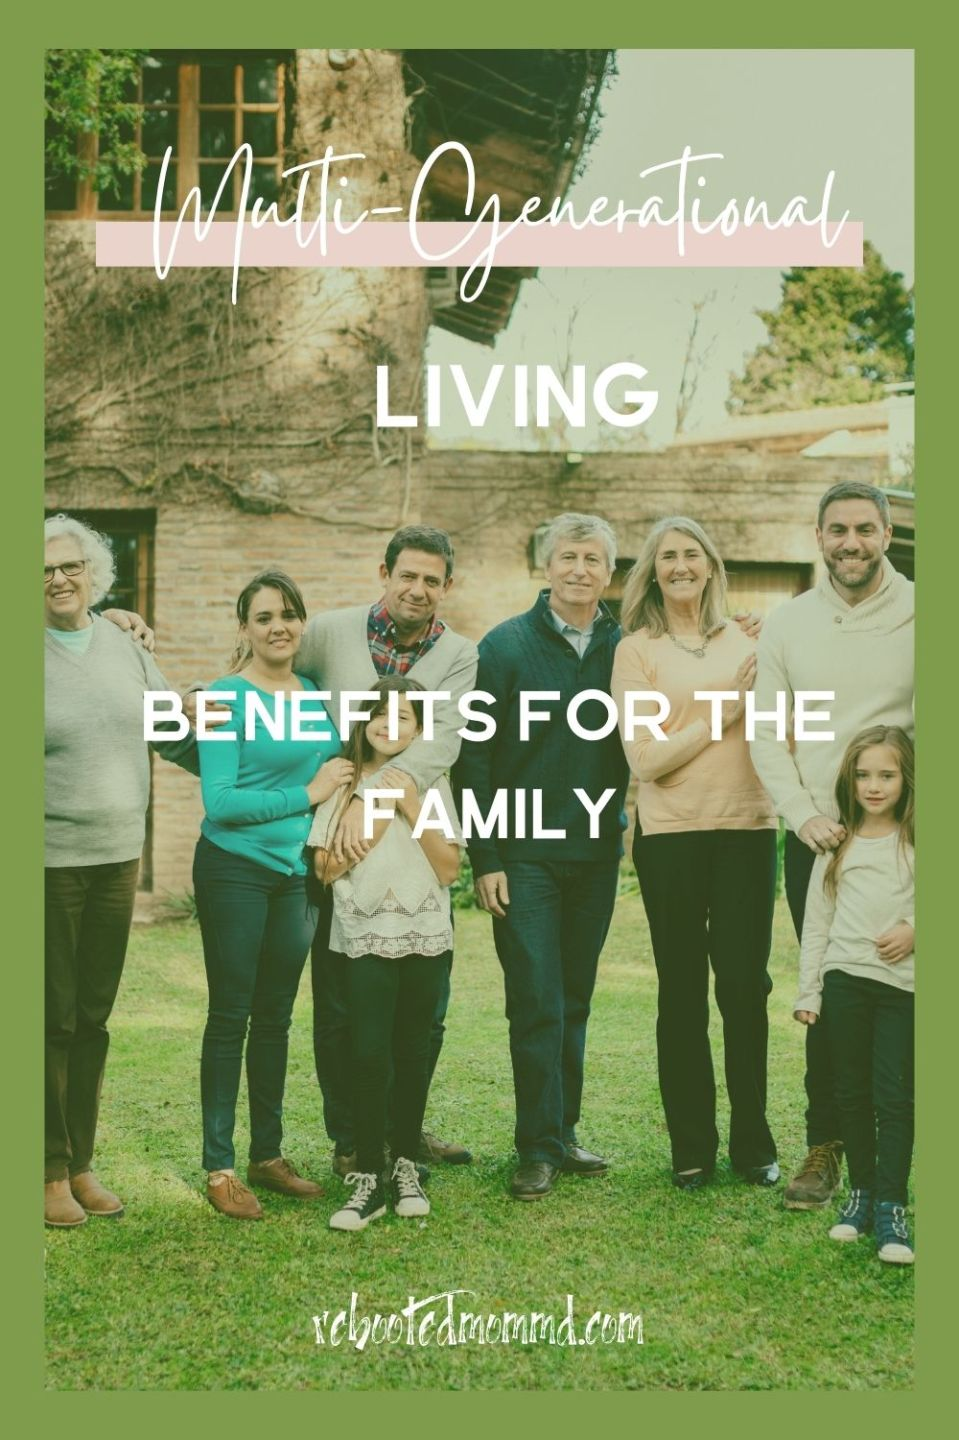 The Benefits of Multi-Generational Living